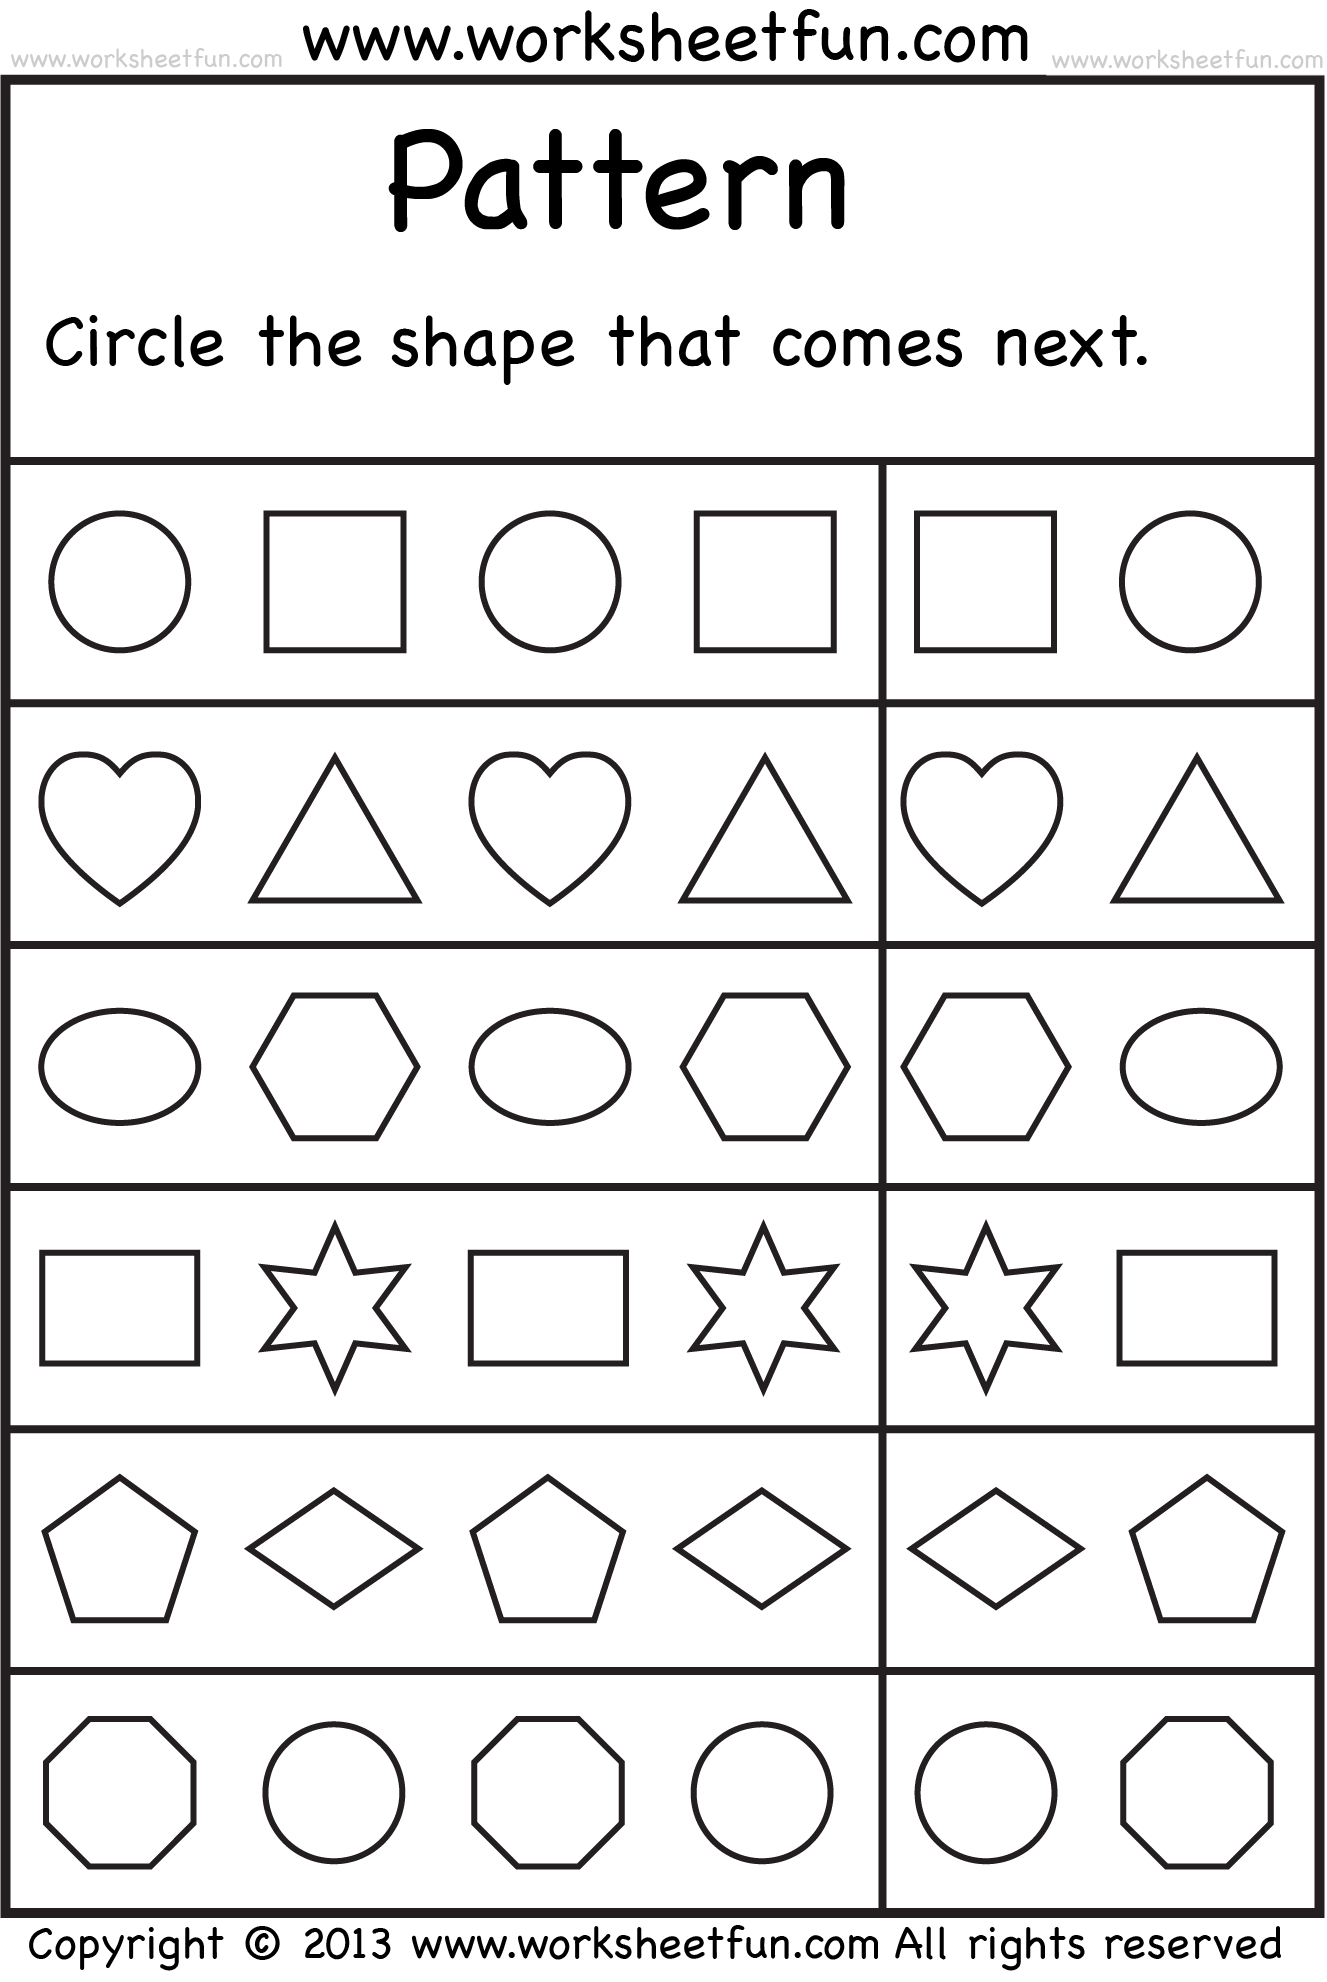 Proatmealus  Unique  Images About School Worksheets On Pinterest  Number Words  With Remarkable  Images About School Worksheets On Pinterest  Number Words Alphabet Worksheets And Free Printable Kindergarten Worksheets With Appealing Simple Past And Present Tense Worksheets Also Rounding Worksheet Th Grade In Addition Ancient Rome Map Worksheet And Worksheet On Periodic Trends As Well As Unclear Pronoun Reference Worksheet Additionally Worksheet On Cell Communication From Pinterestcom With Proatmealus  Remarkable  Images About School Worksheets On Pinterest  Number Words  With Appealing  Images About School Worksheets On Pinterest  Number Words Alphabet Worksheets And Free Printable Kindergarten Worksheets And Unique Simple Past And Present Tense Worksheets Also Rounding Worksheet Th Grade In Addition Ancient Rome Map Worksheet From Pinterestcom